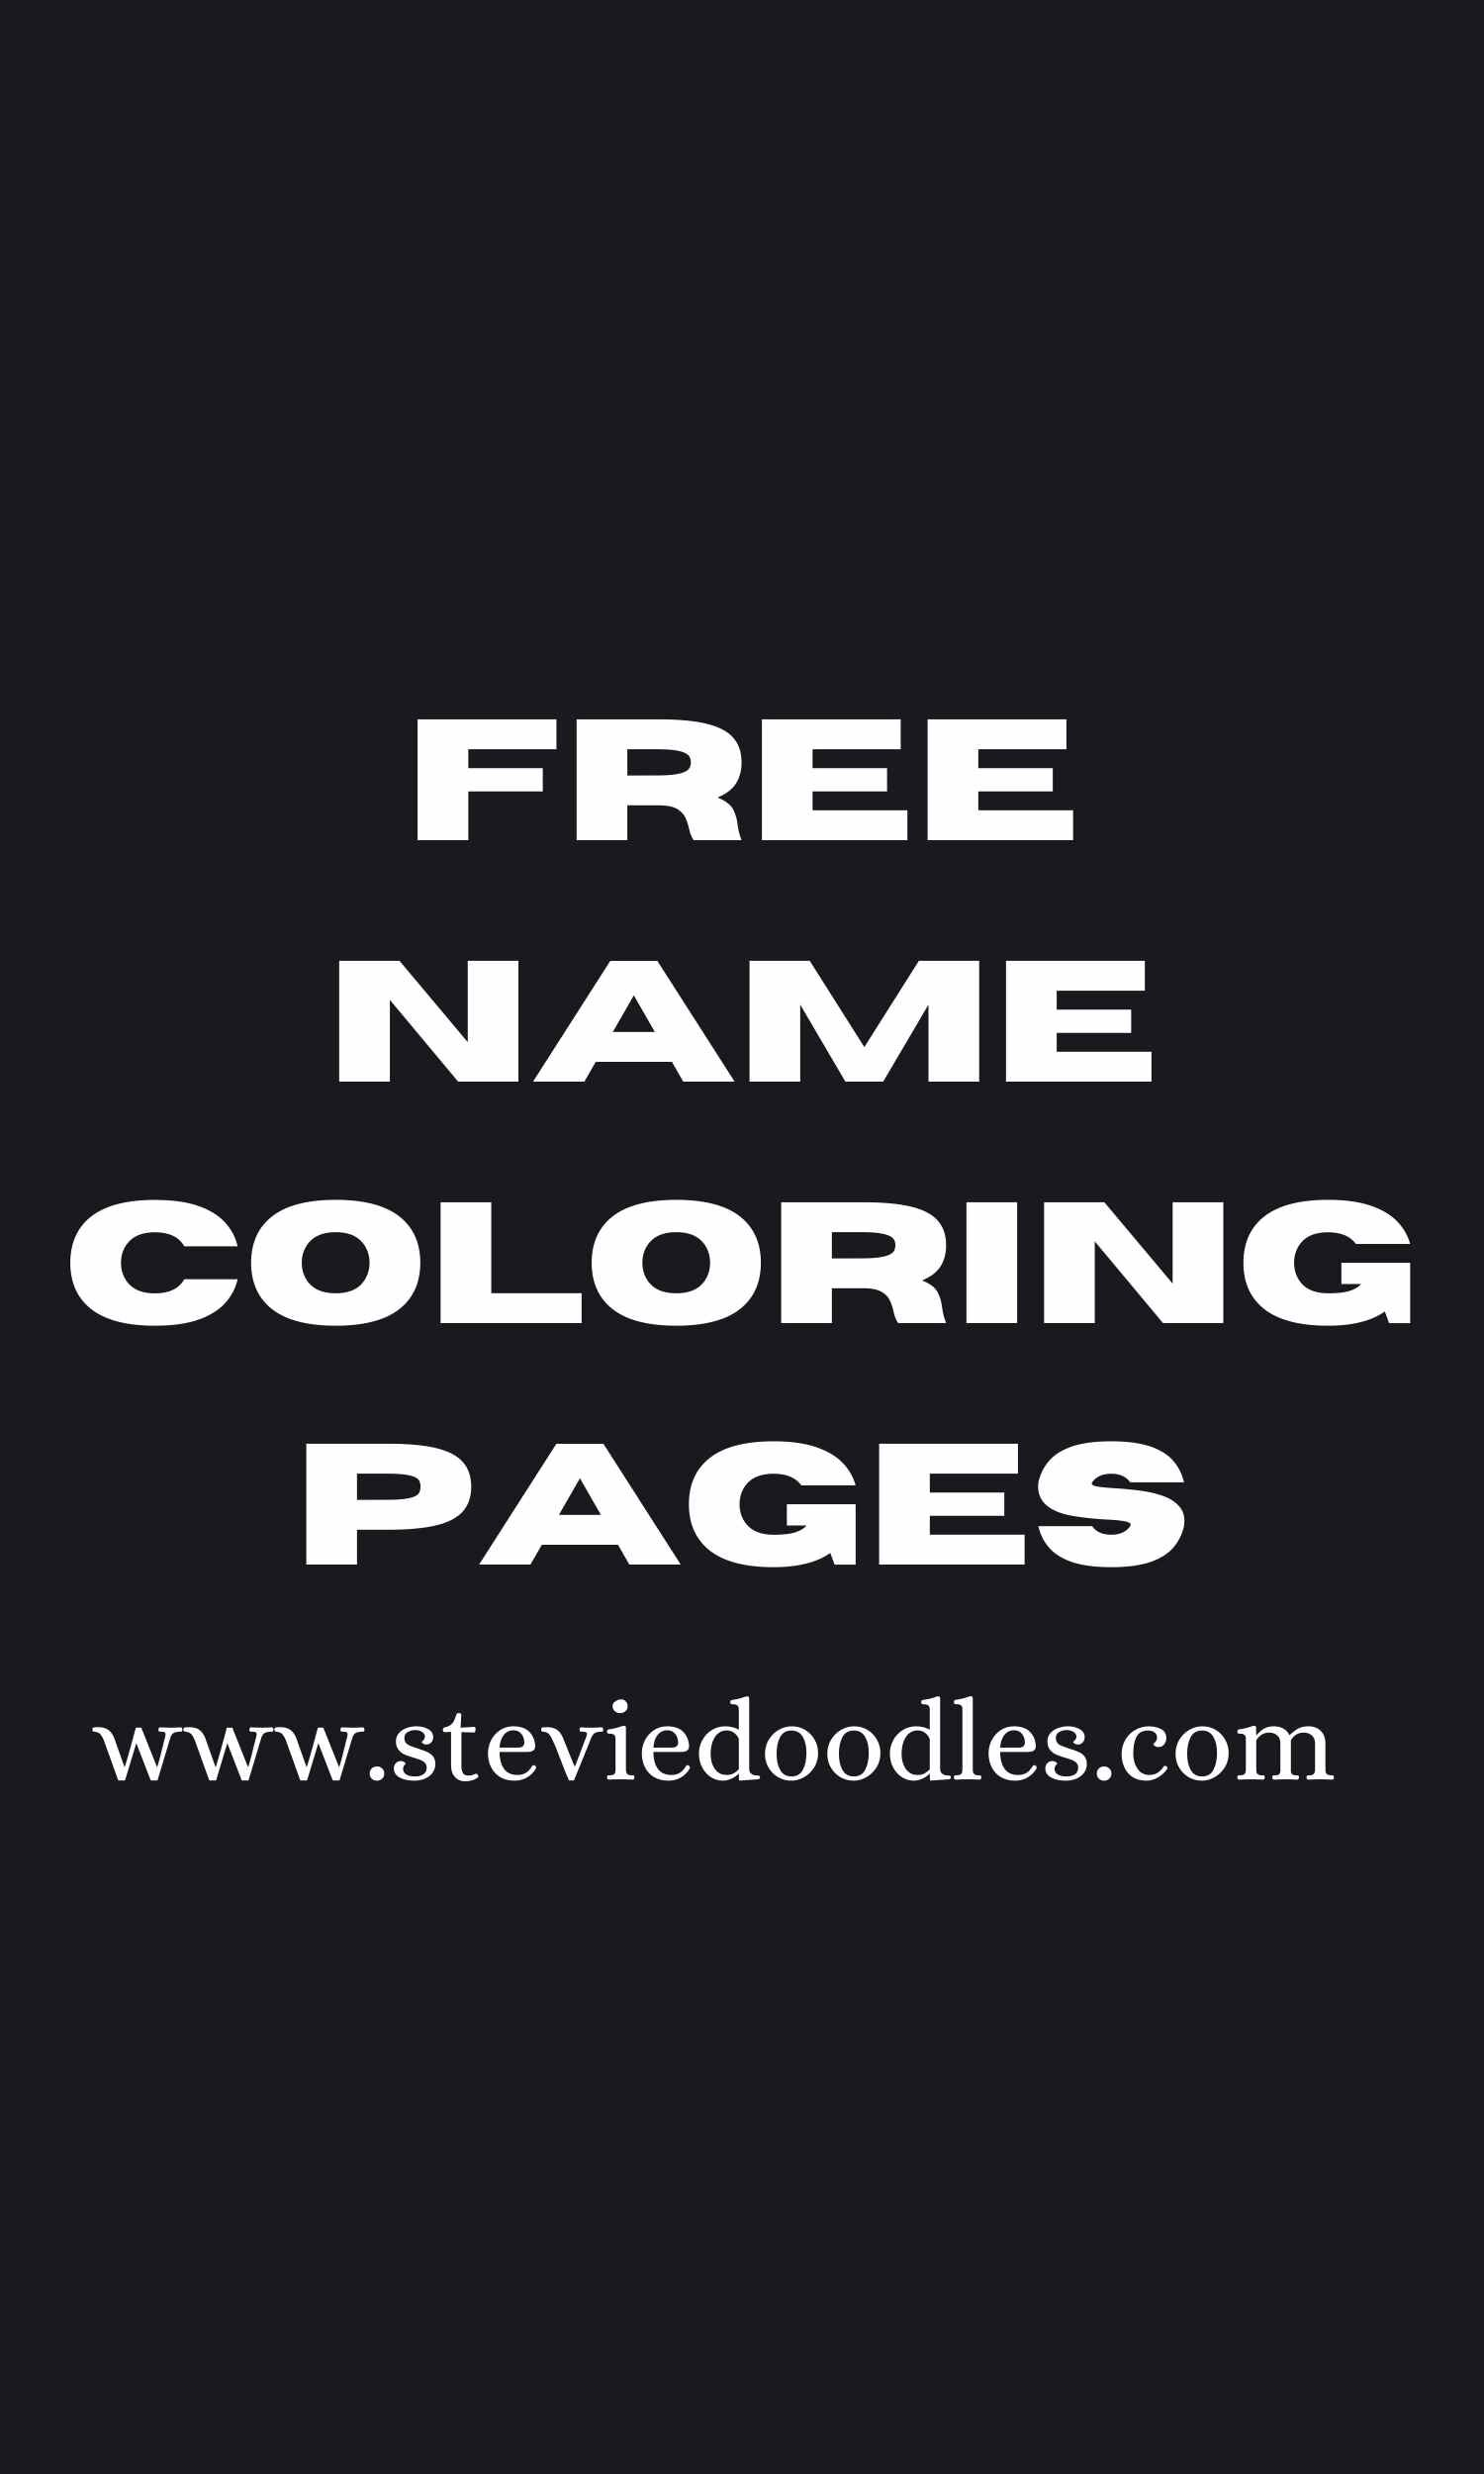 Find your name among Stevie Doodles free printable name coloring pages for personalized coloring